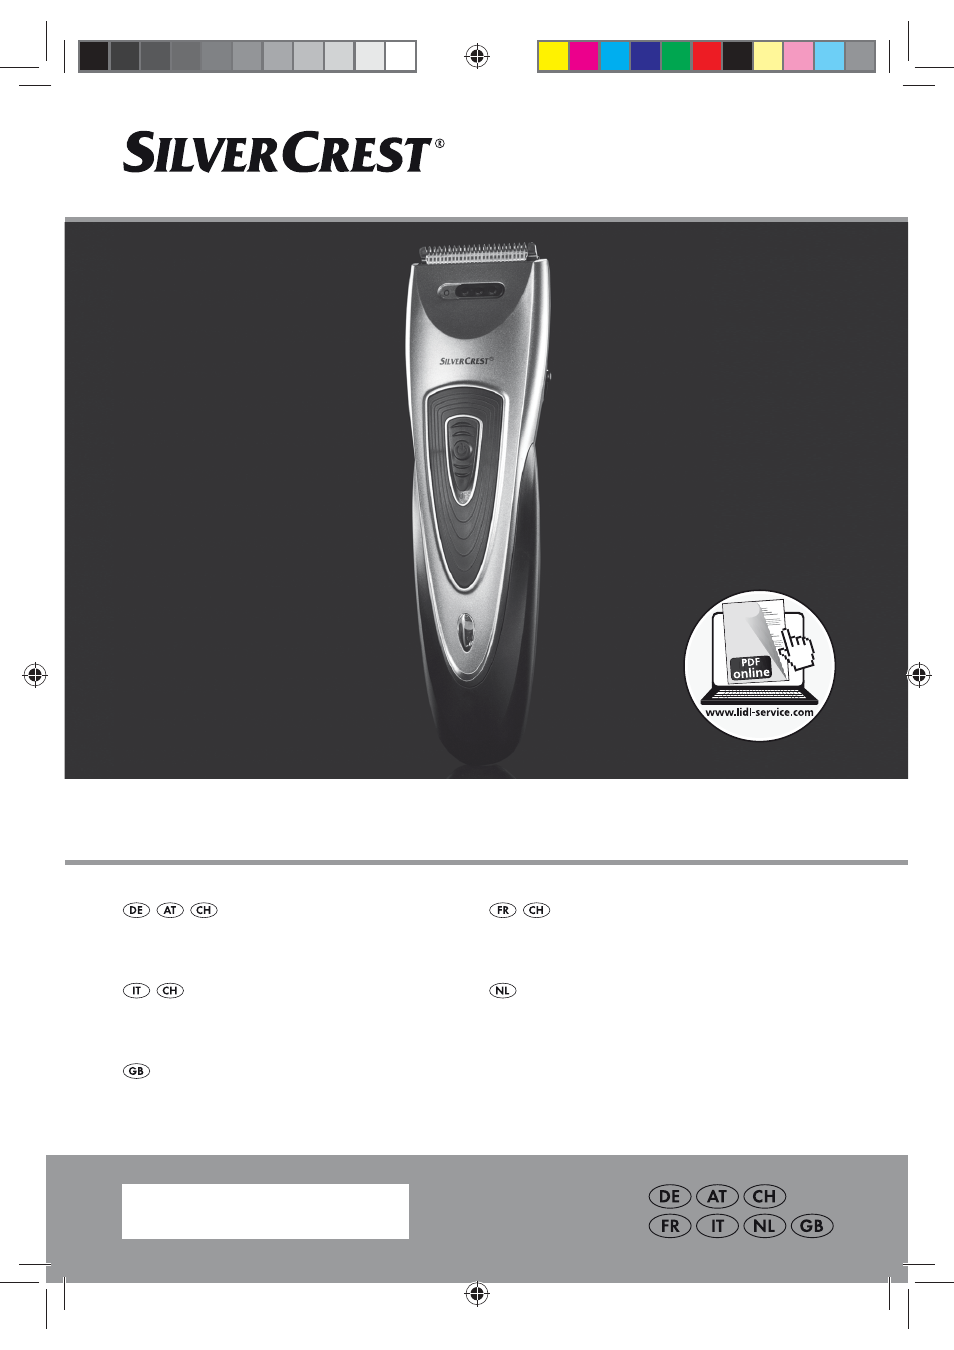 Silvercrest SHBS 500 B1 User Manual 76 pages Also for